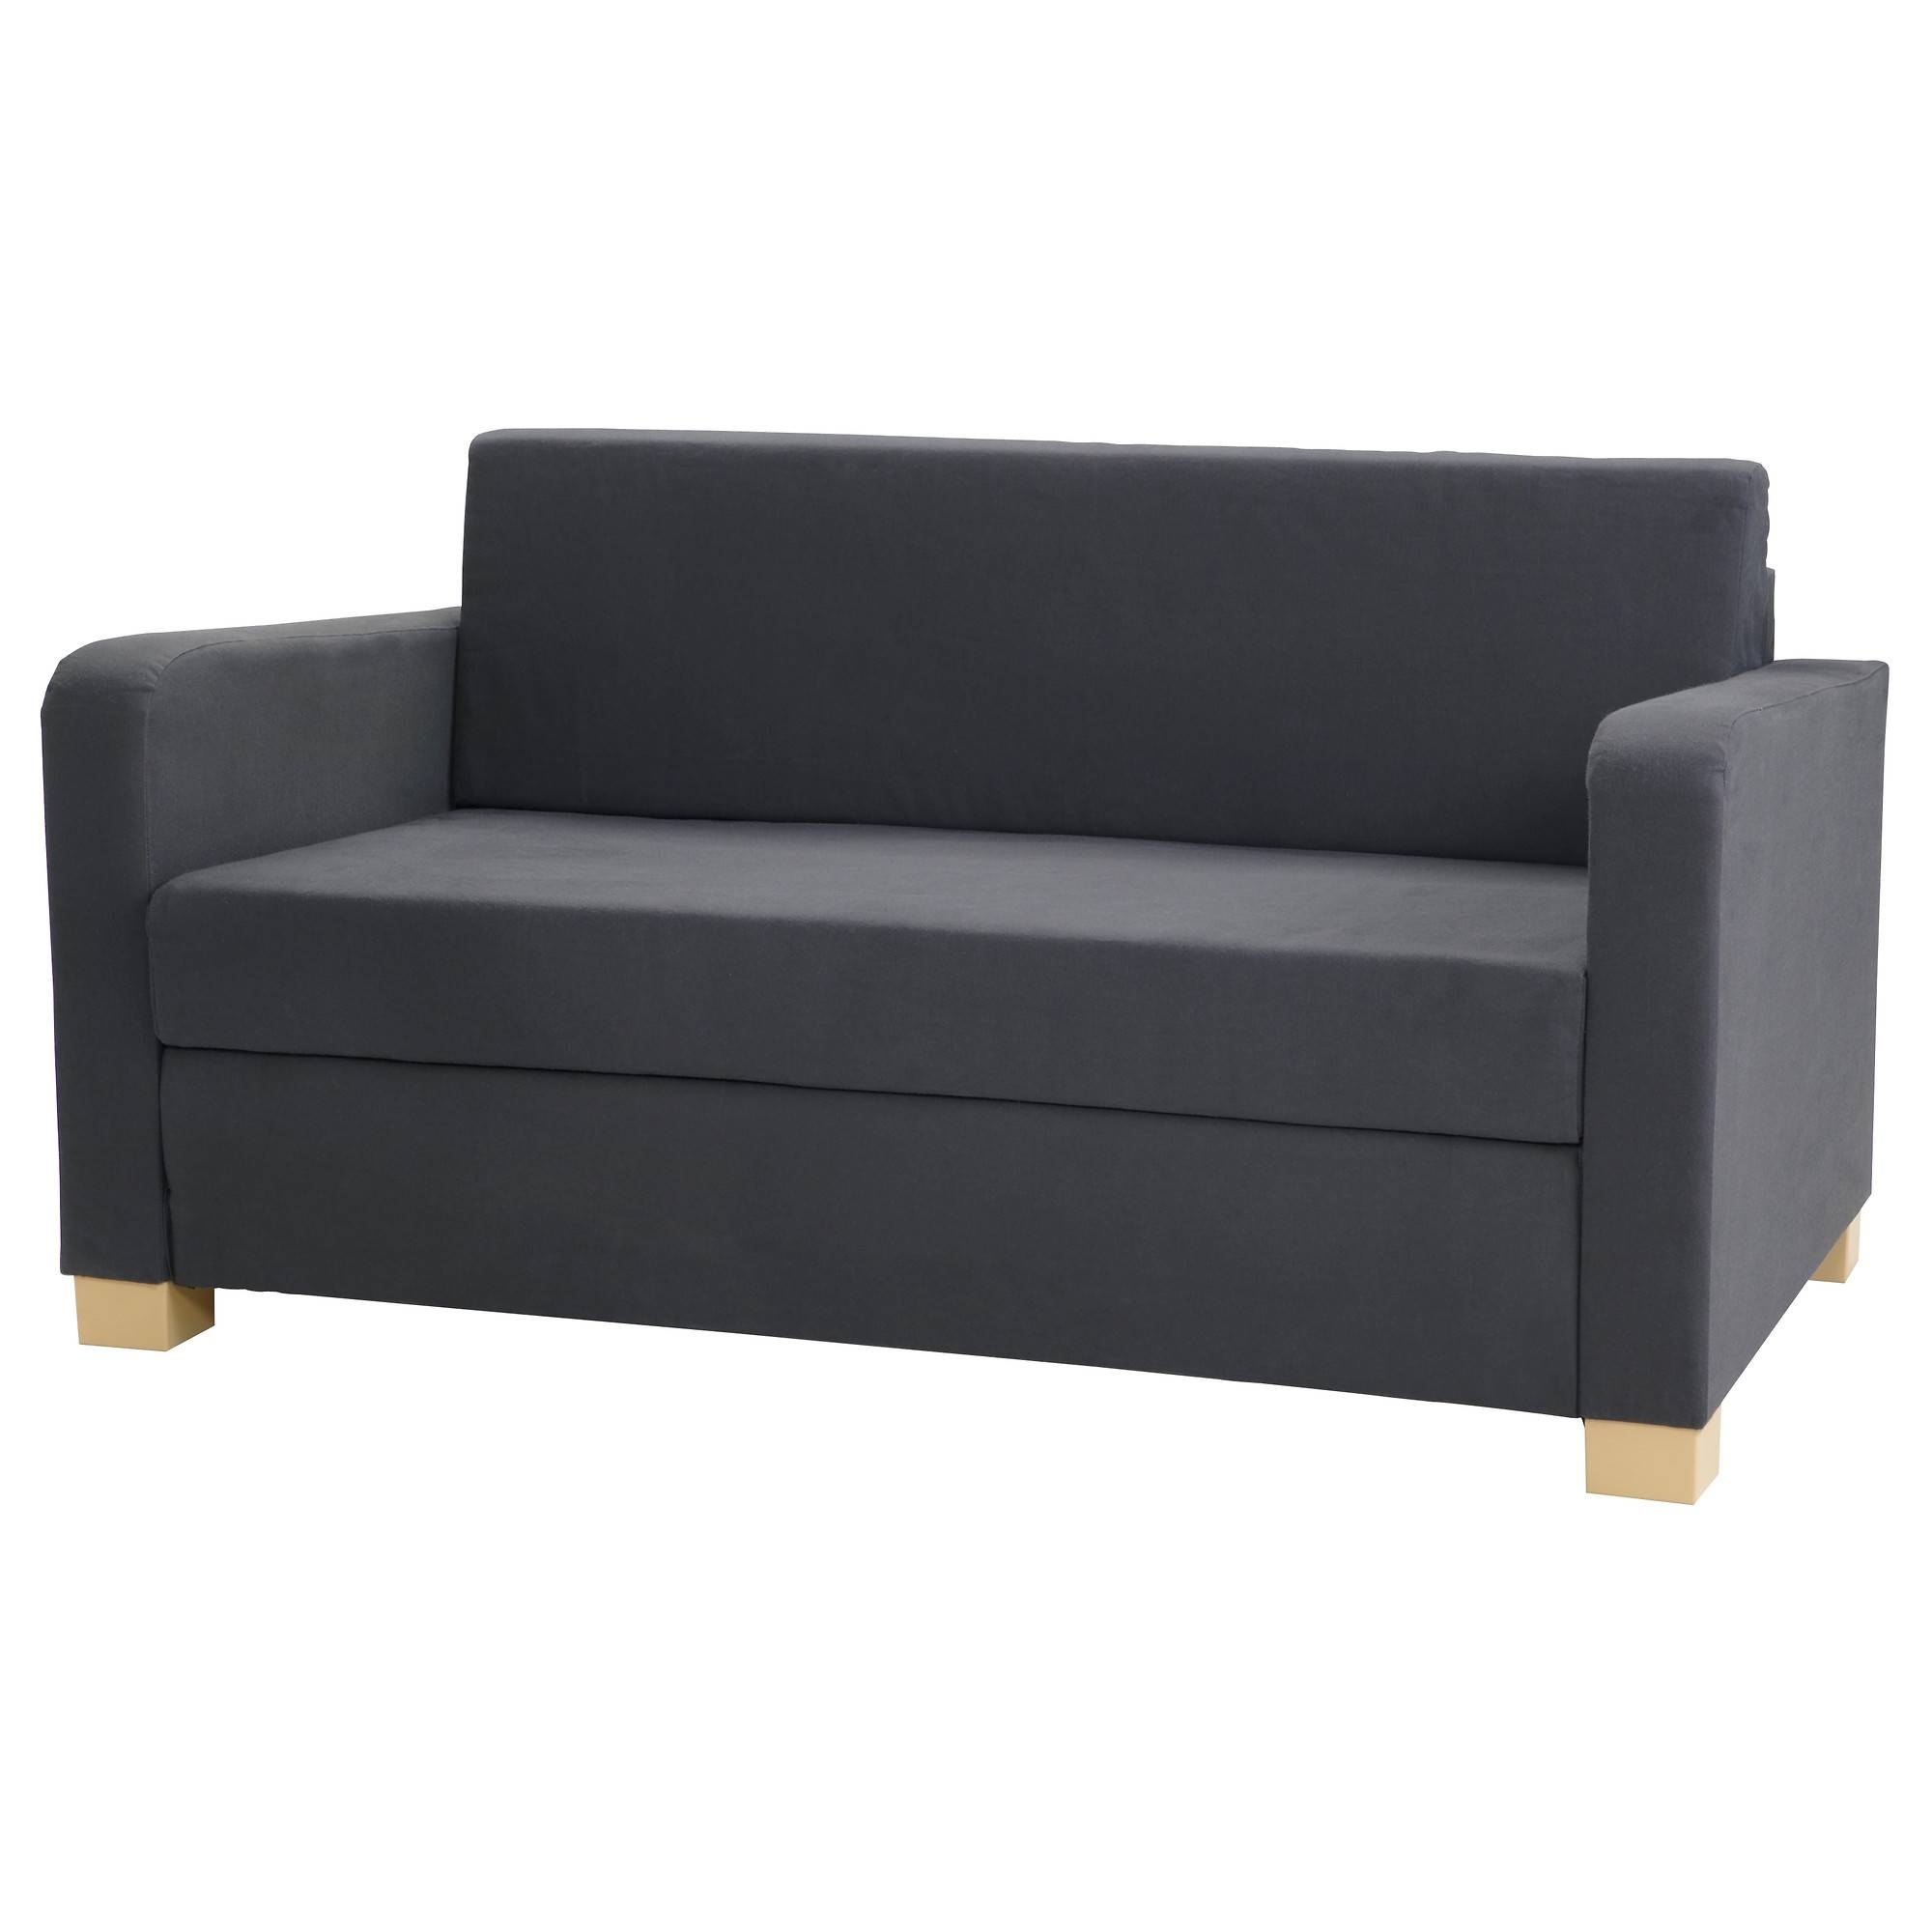 Sofa Beds & Futons - Ikea in Footstool Pouffe Sofa Folding Bed (Image 24 of 25)